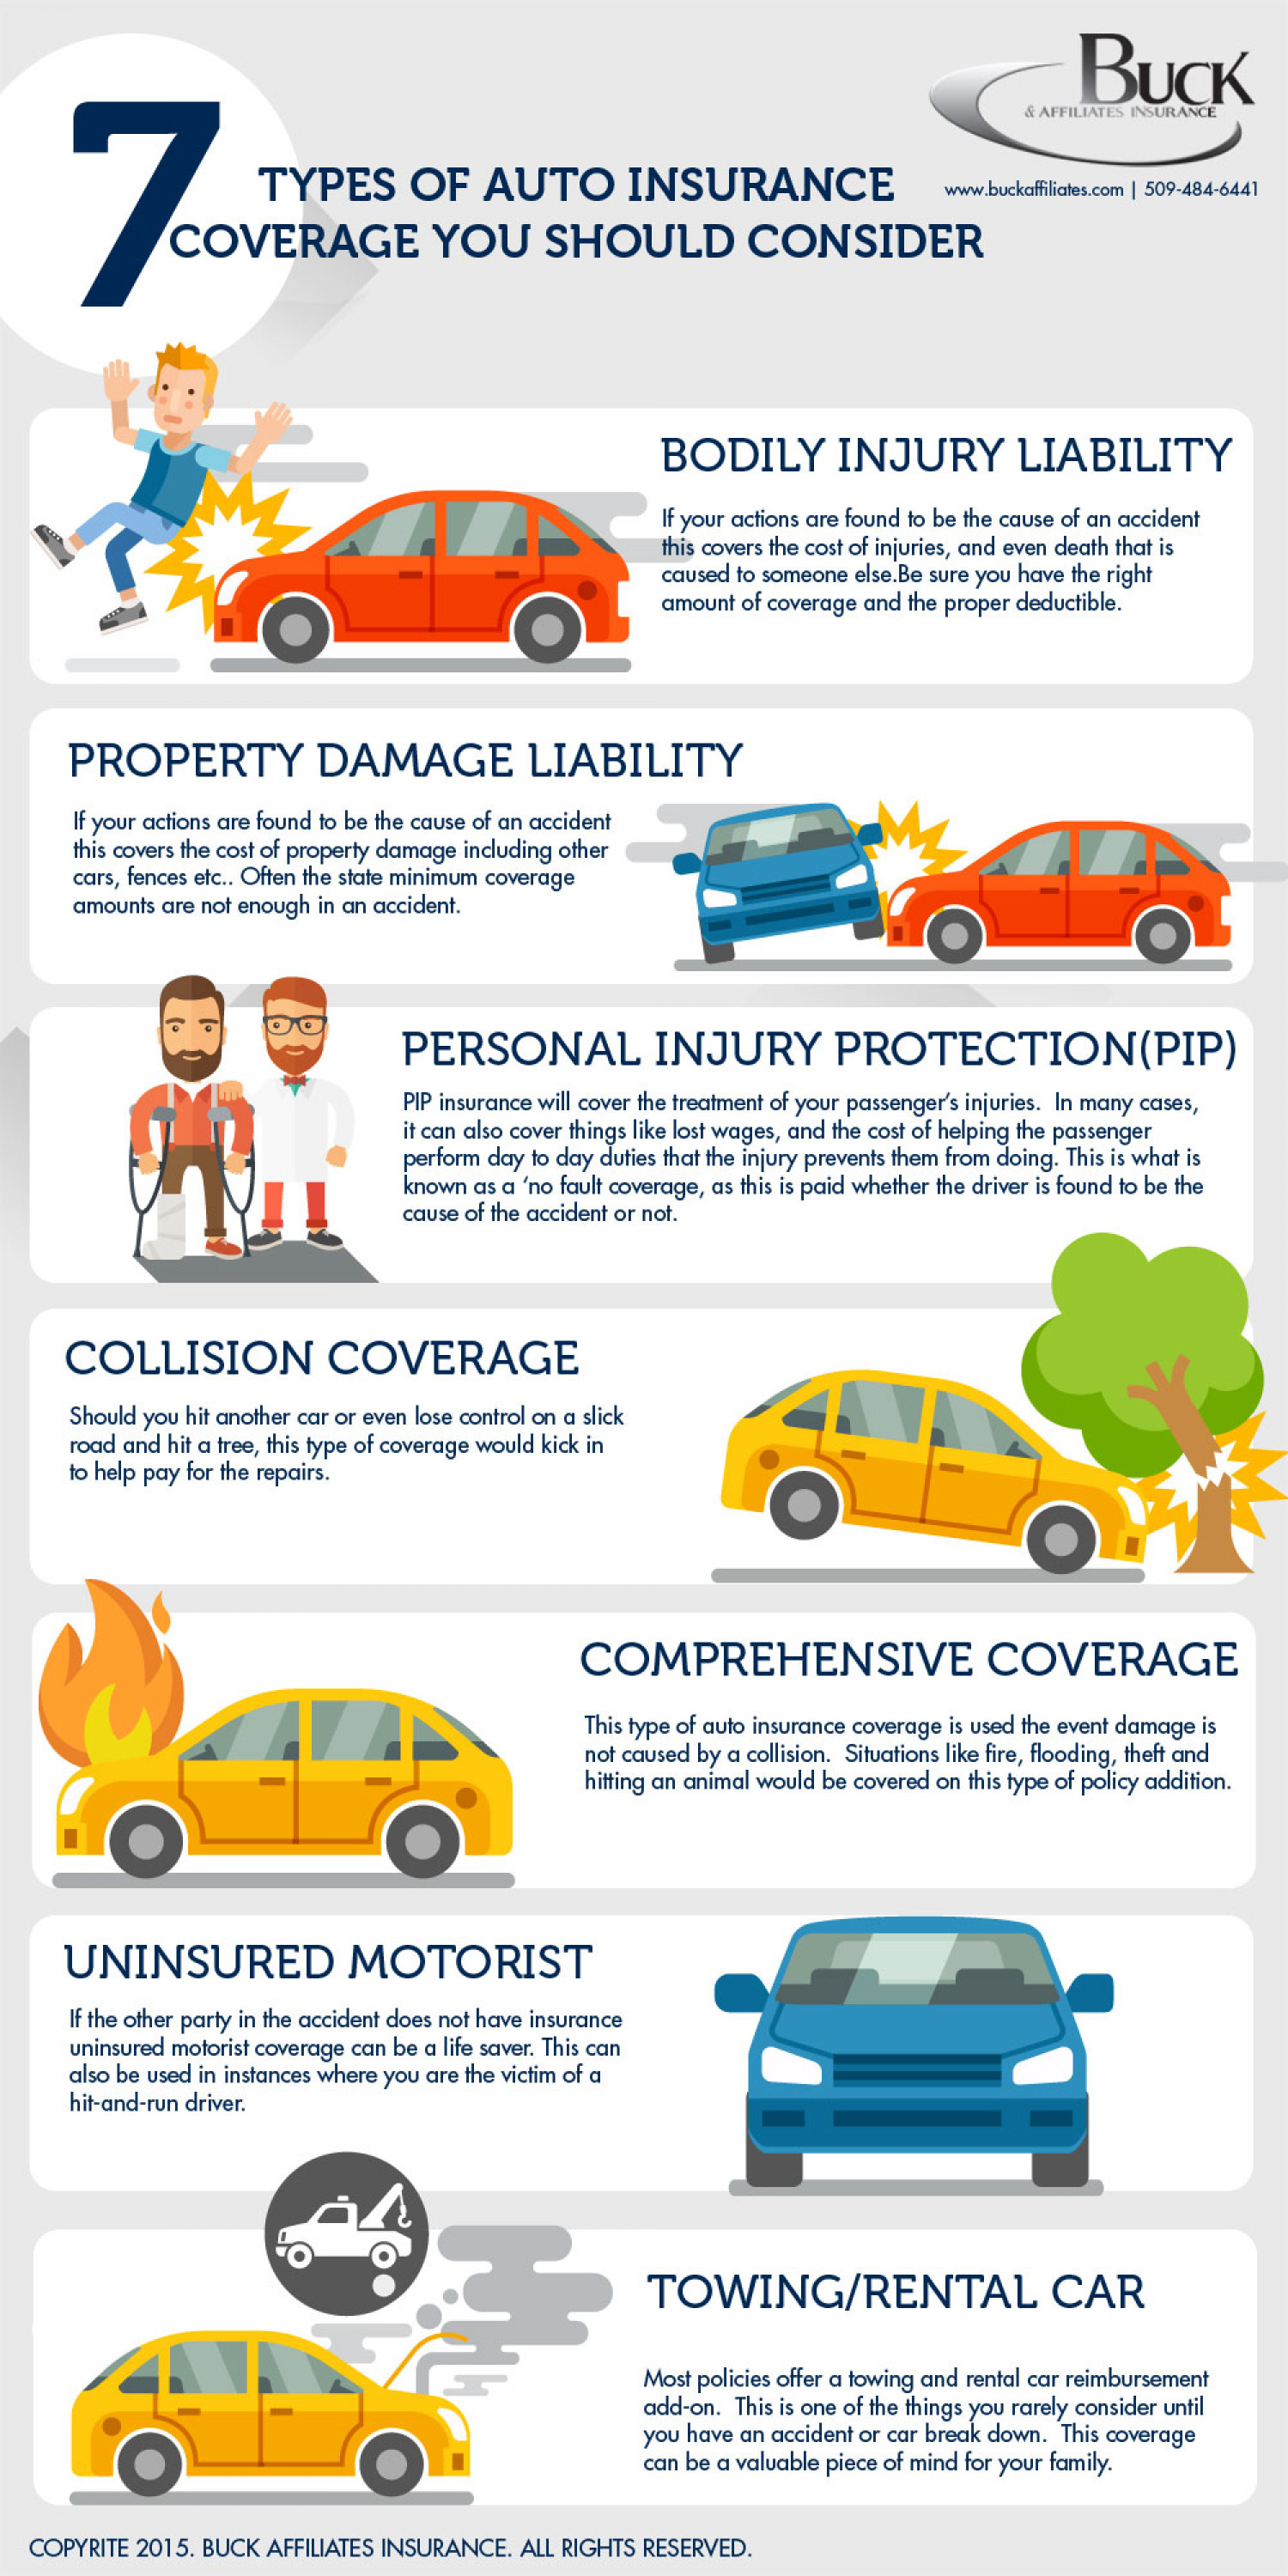 Some Things To Consider About Automobile Insurance